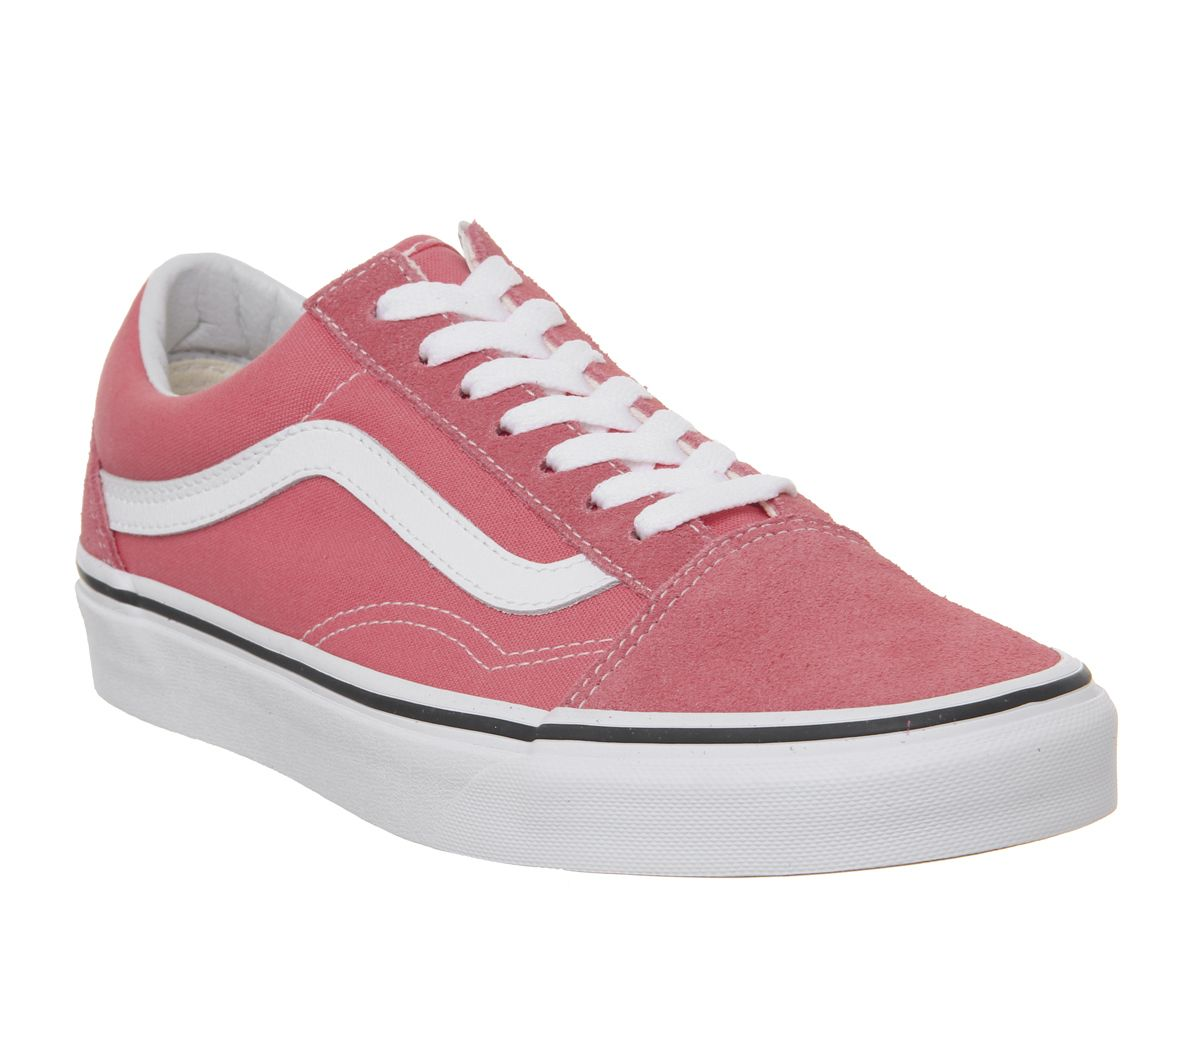 ebe9e07cc6 Vans Old Skool Trainers Strawberry Pink True White - Hers trainers